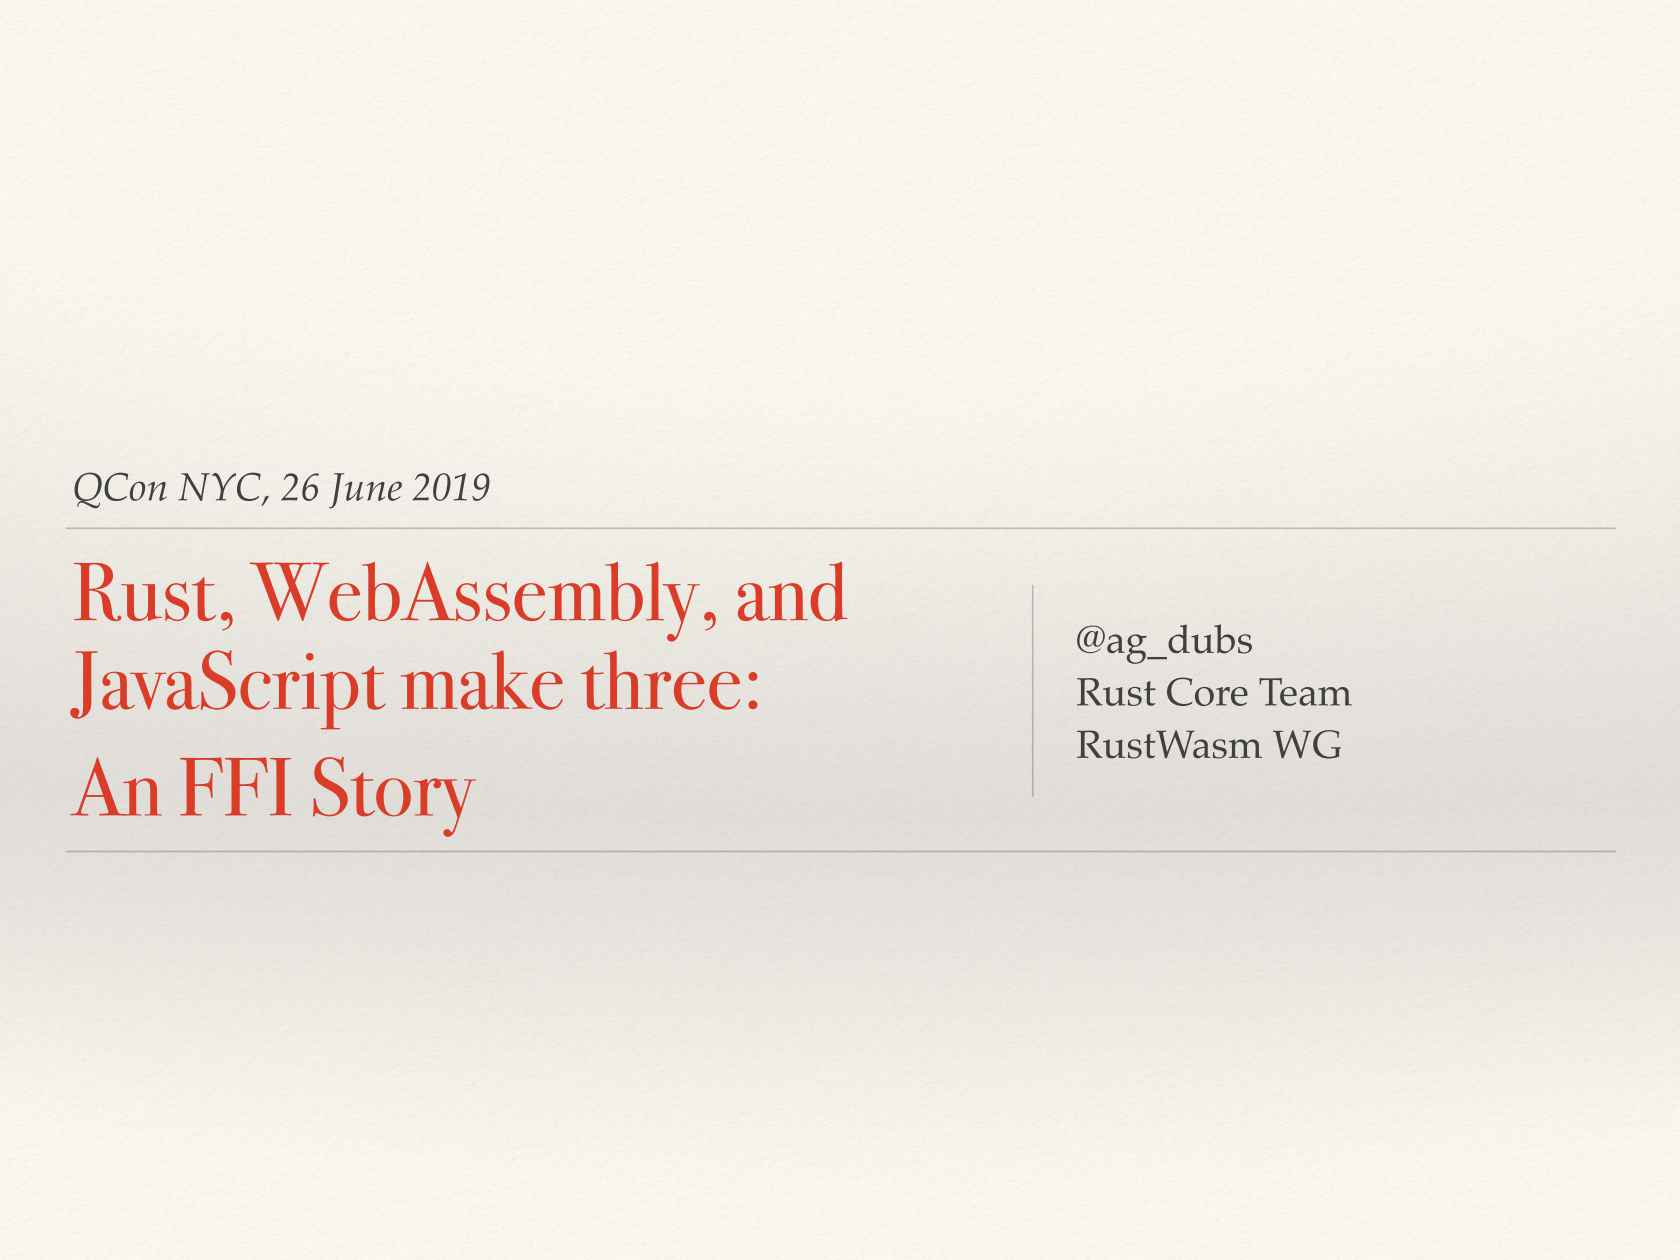 Rust, WebAssembly, and Javascript Make Three: An FFI Story